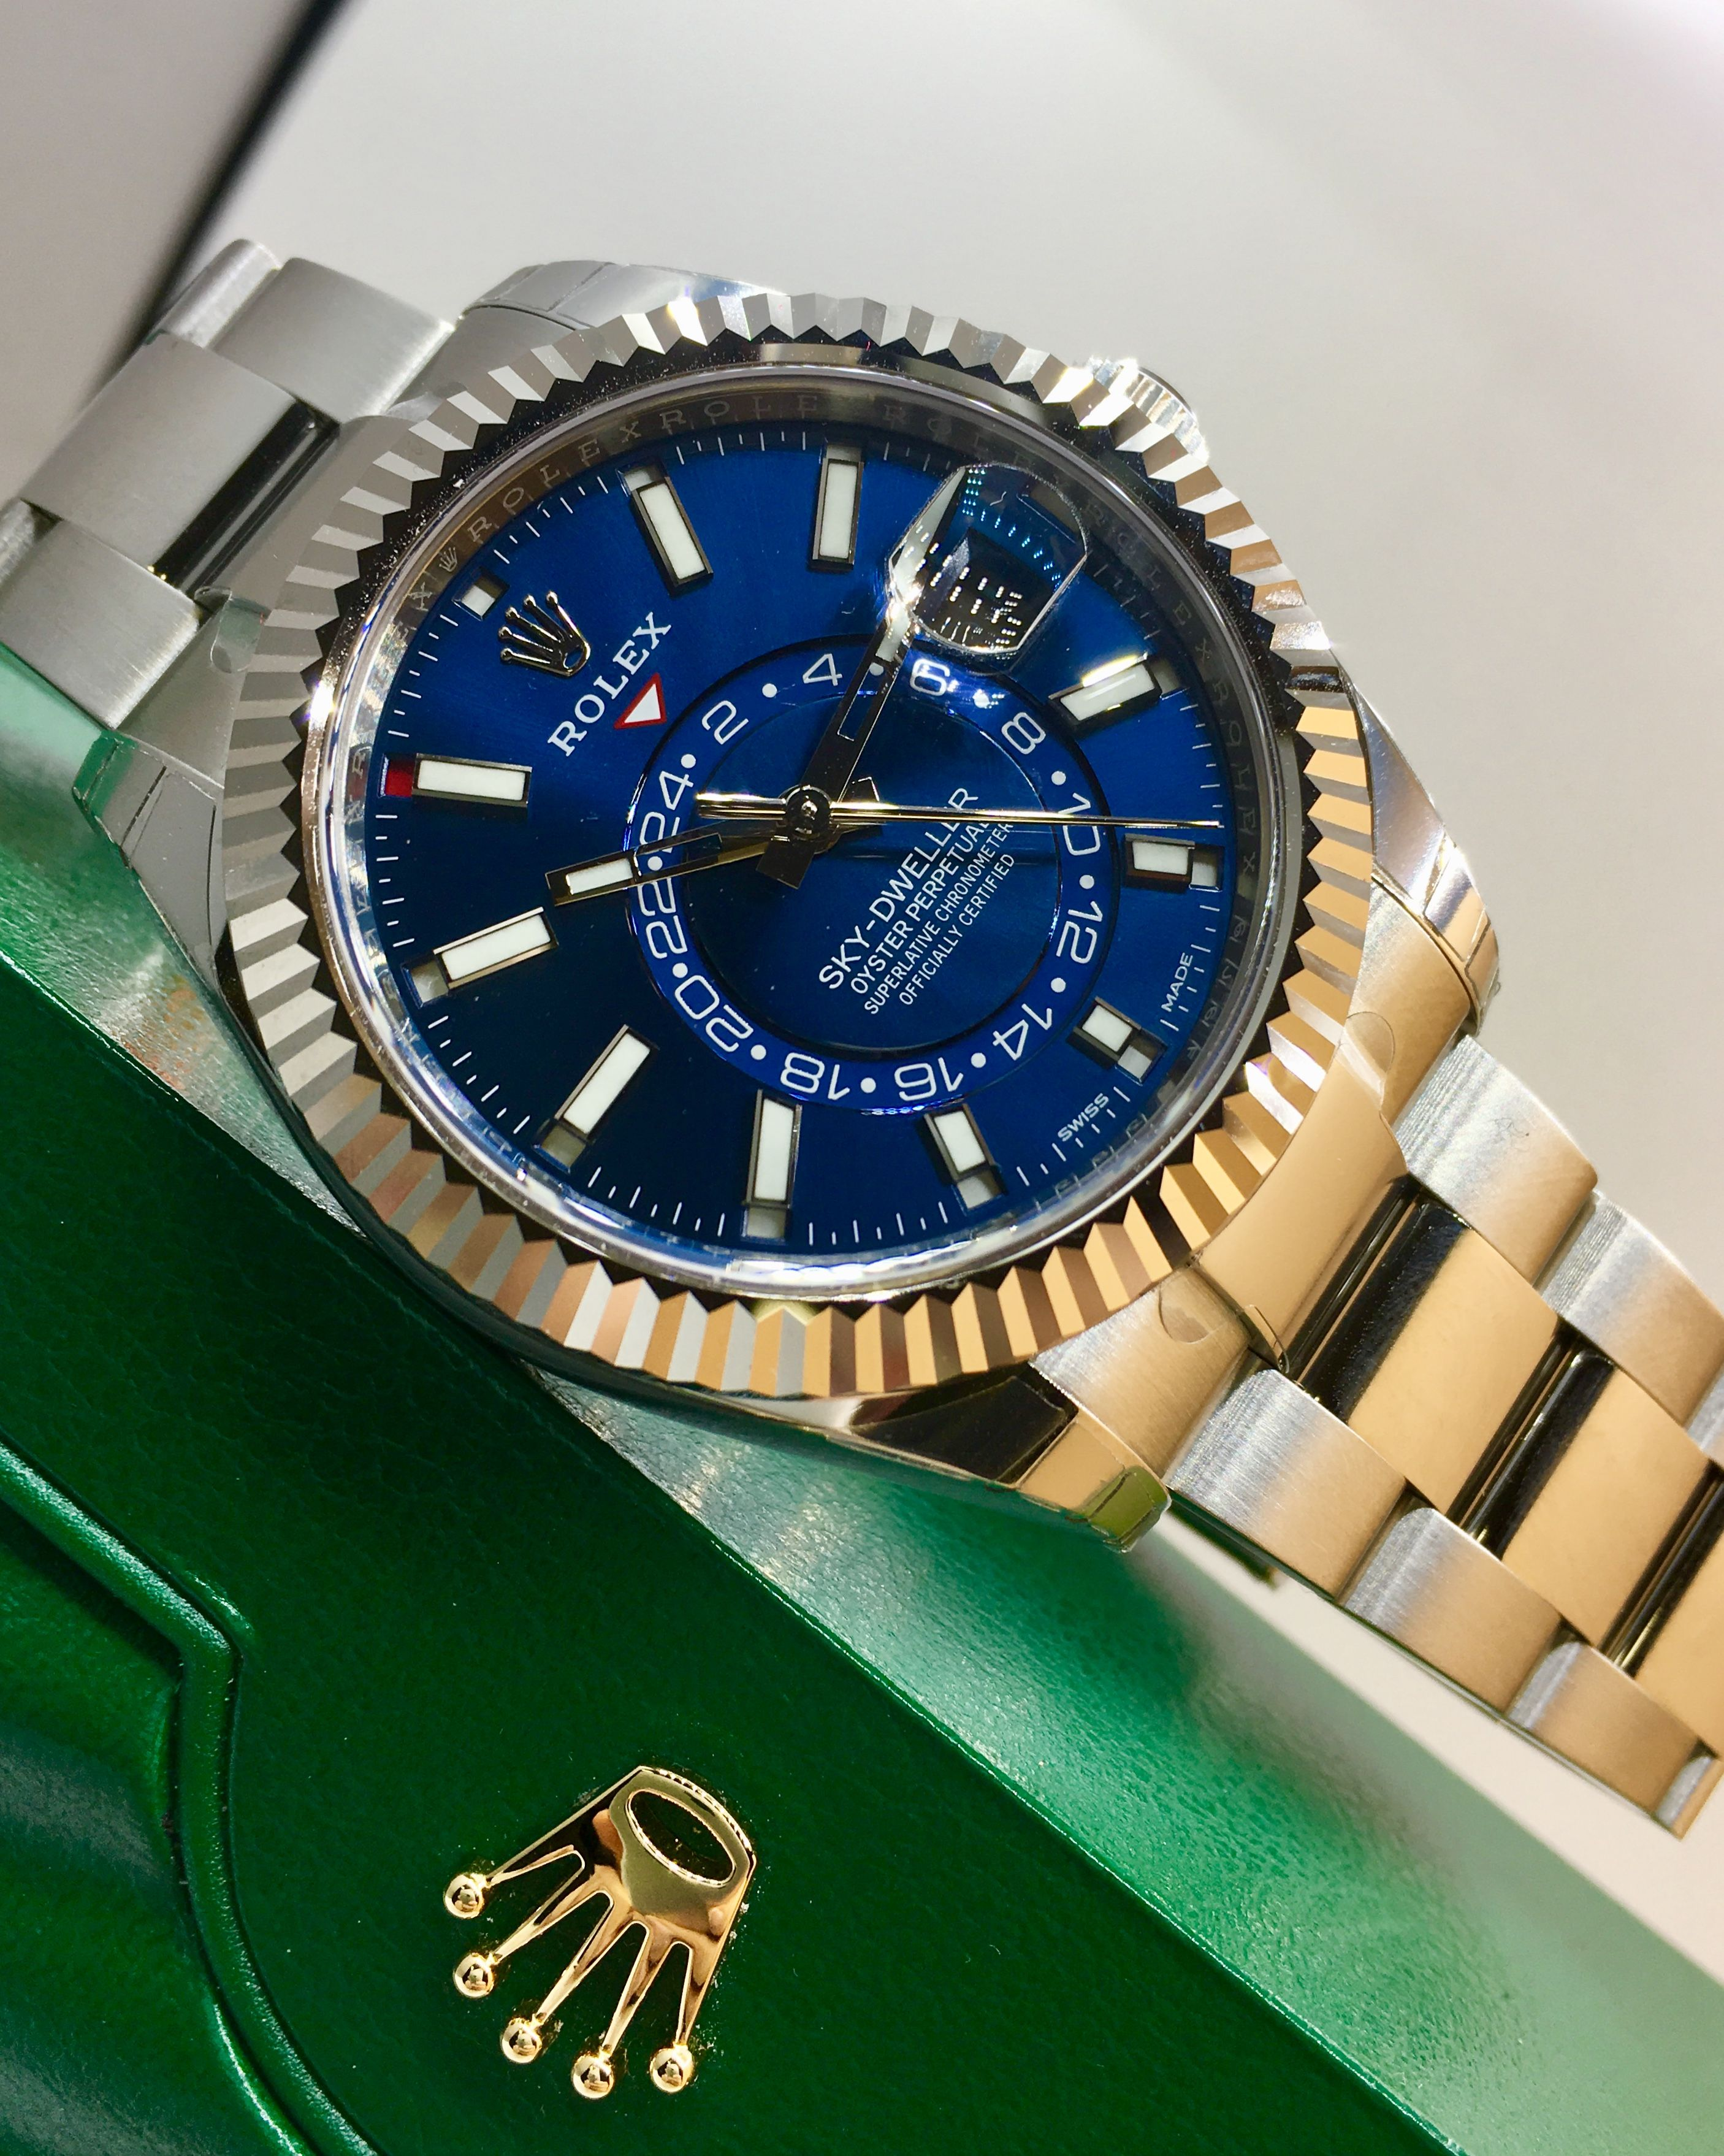 Rolex Sky Dweller Stainless Steel Blue Dial 326934 Watches For Men Swiss Army Watches Rolex